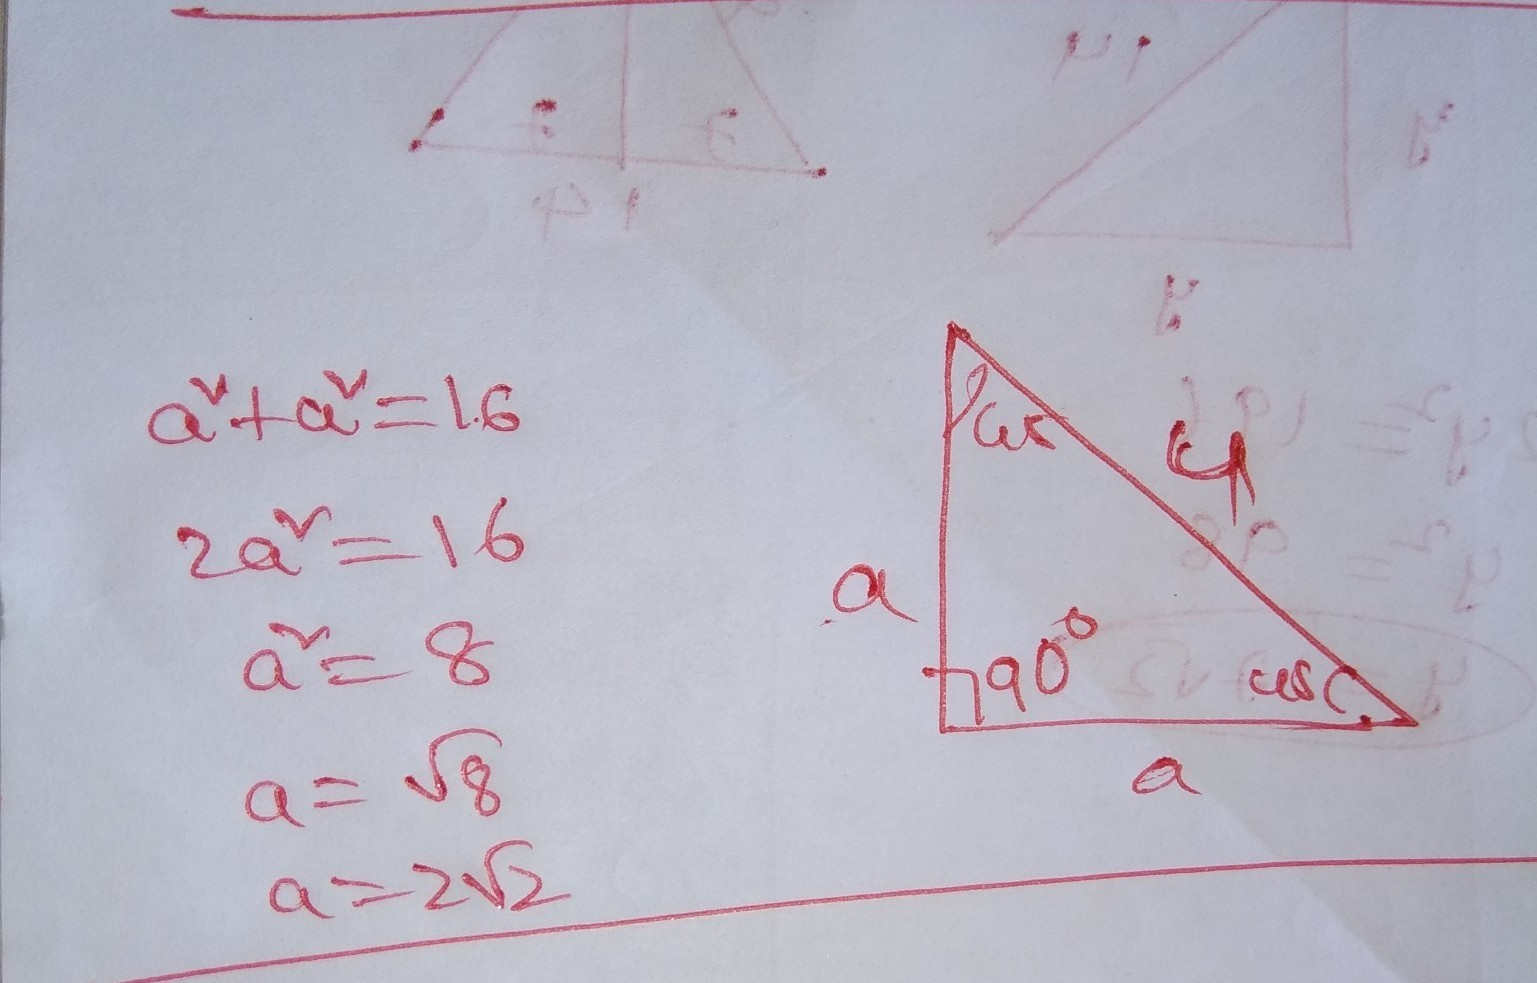 The Hypotenuse Of A 45 45 90 Triangle Measures 4cm What